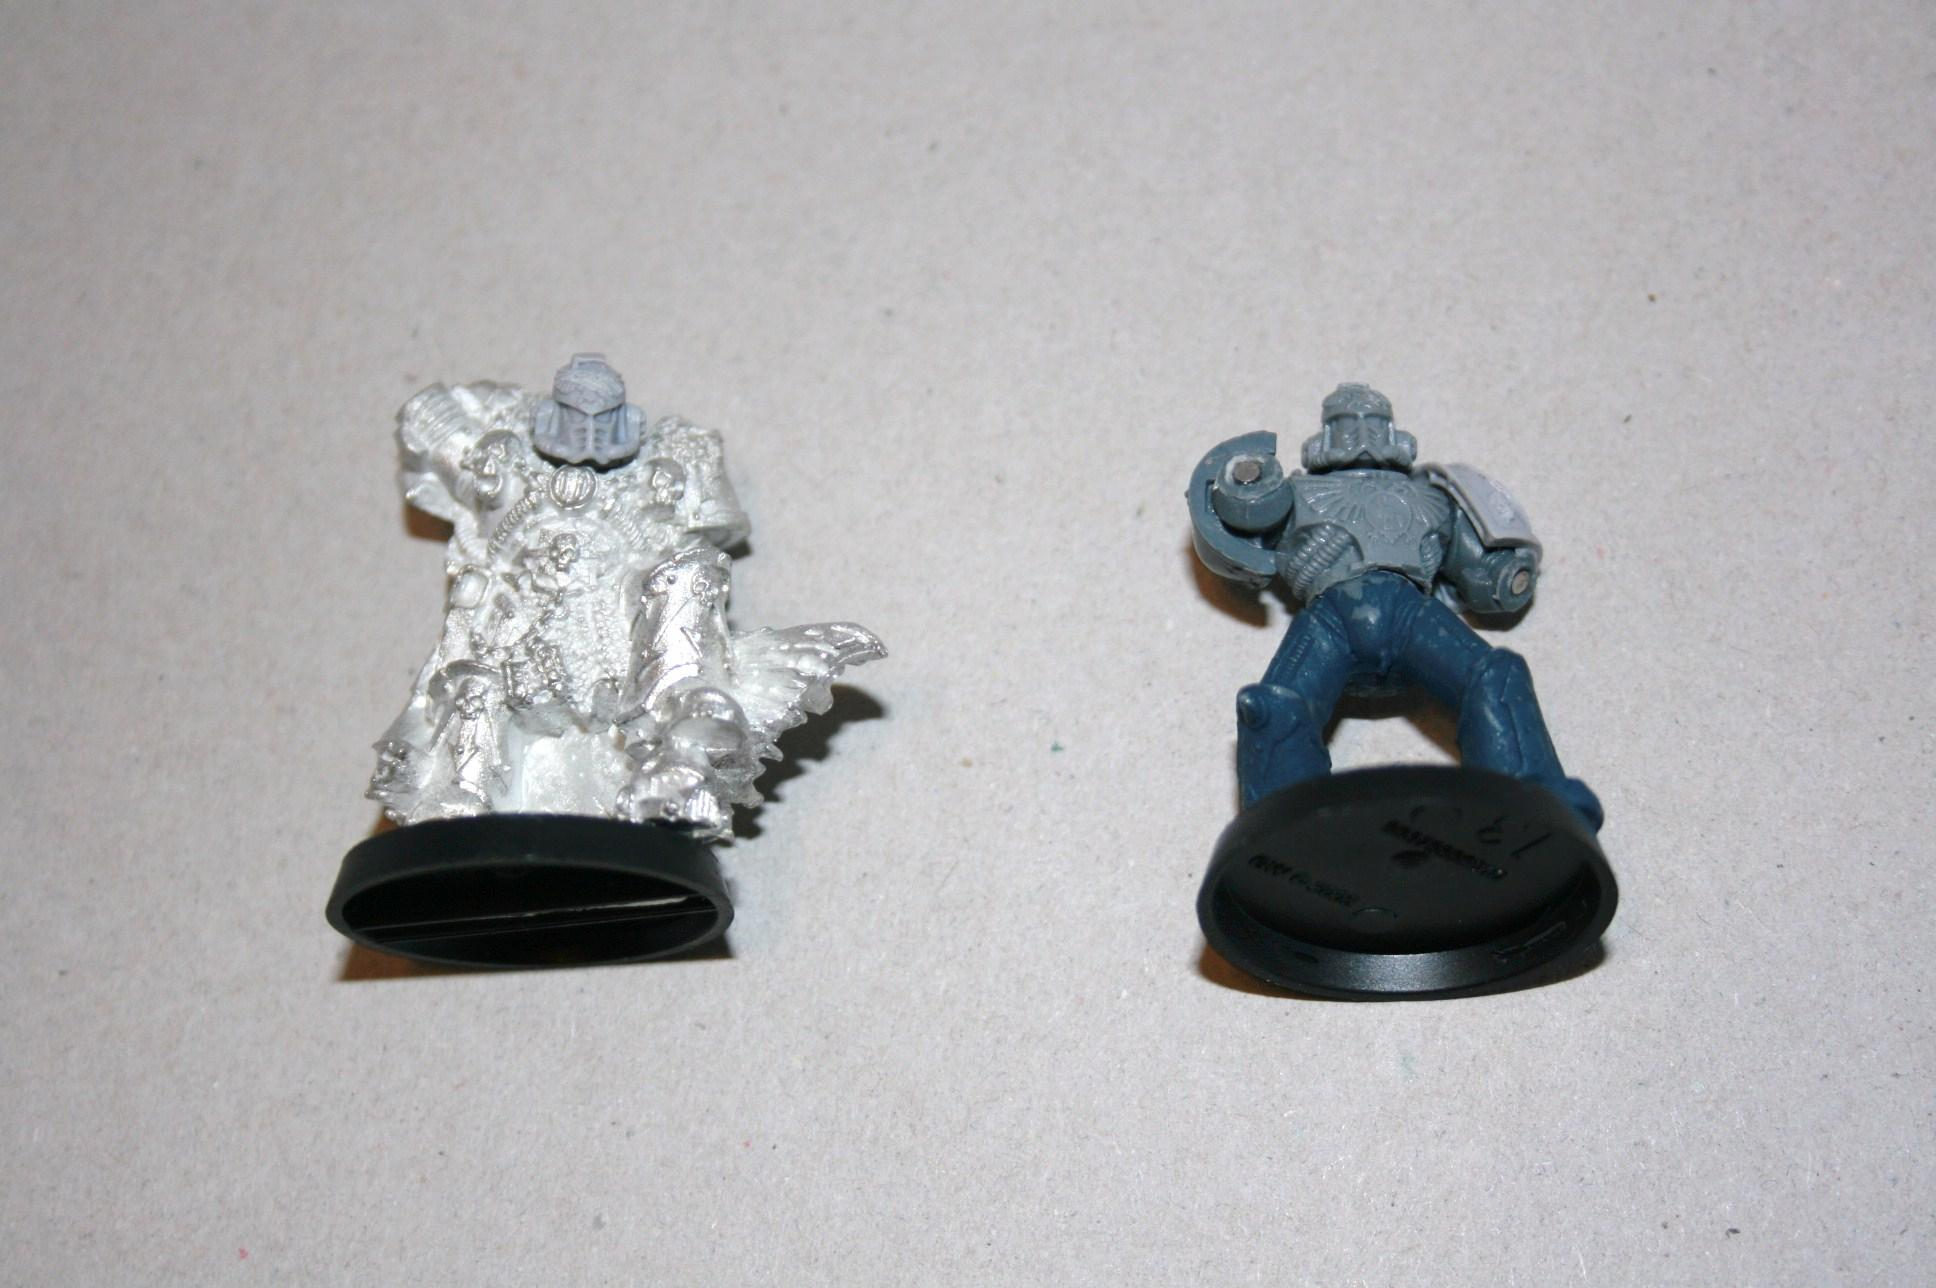 Two Chaos Lords, Magnetized arms